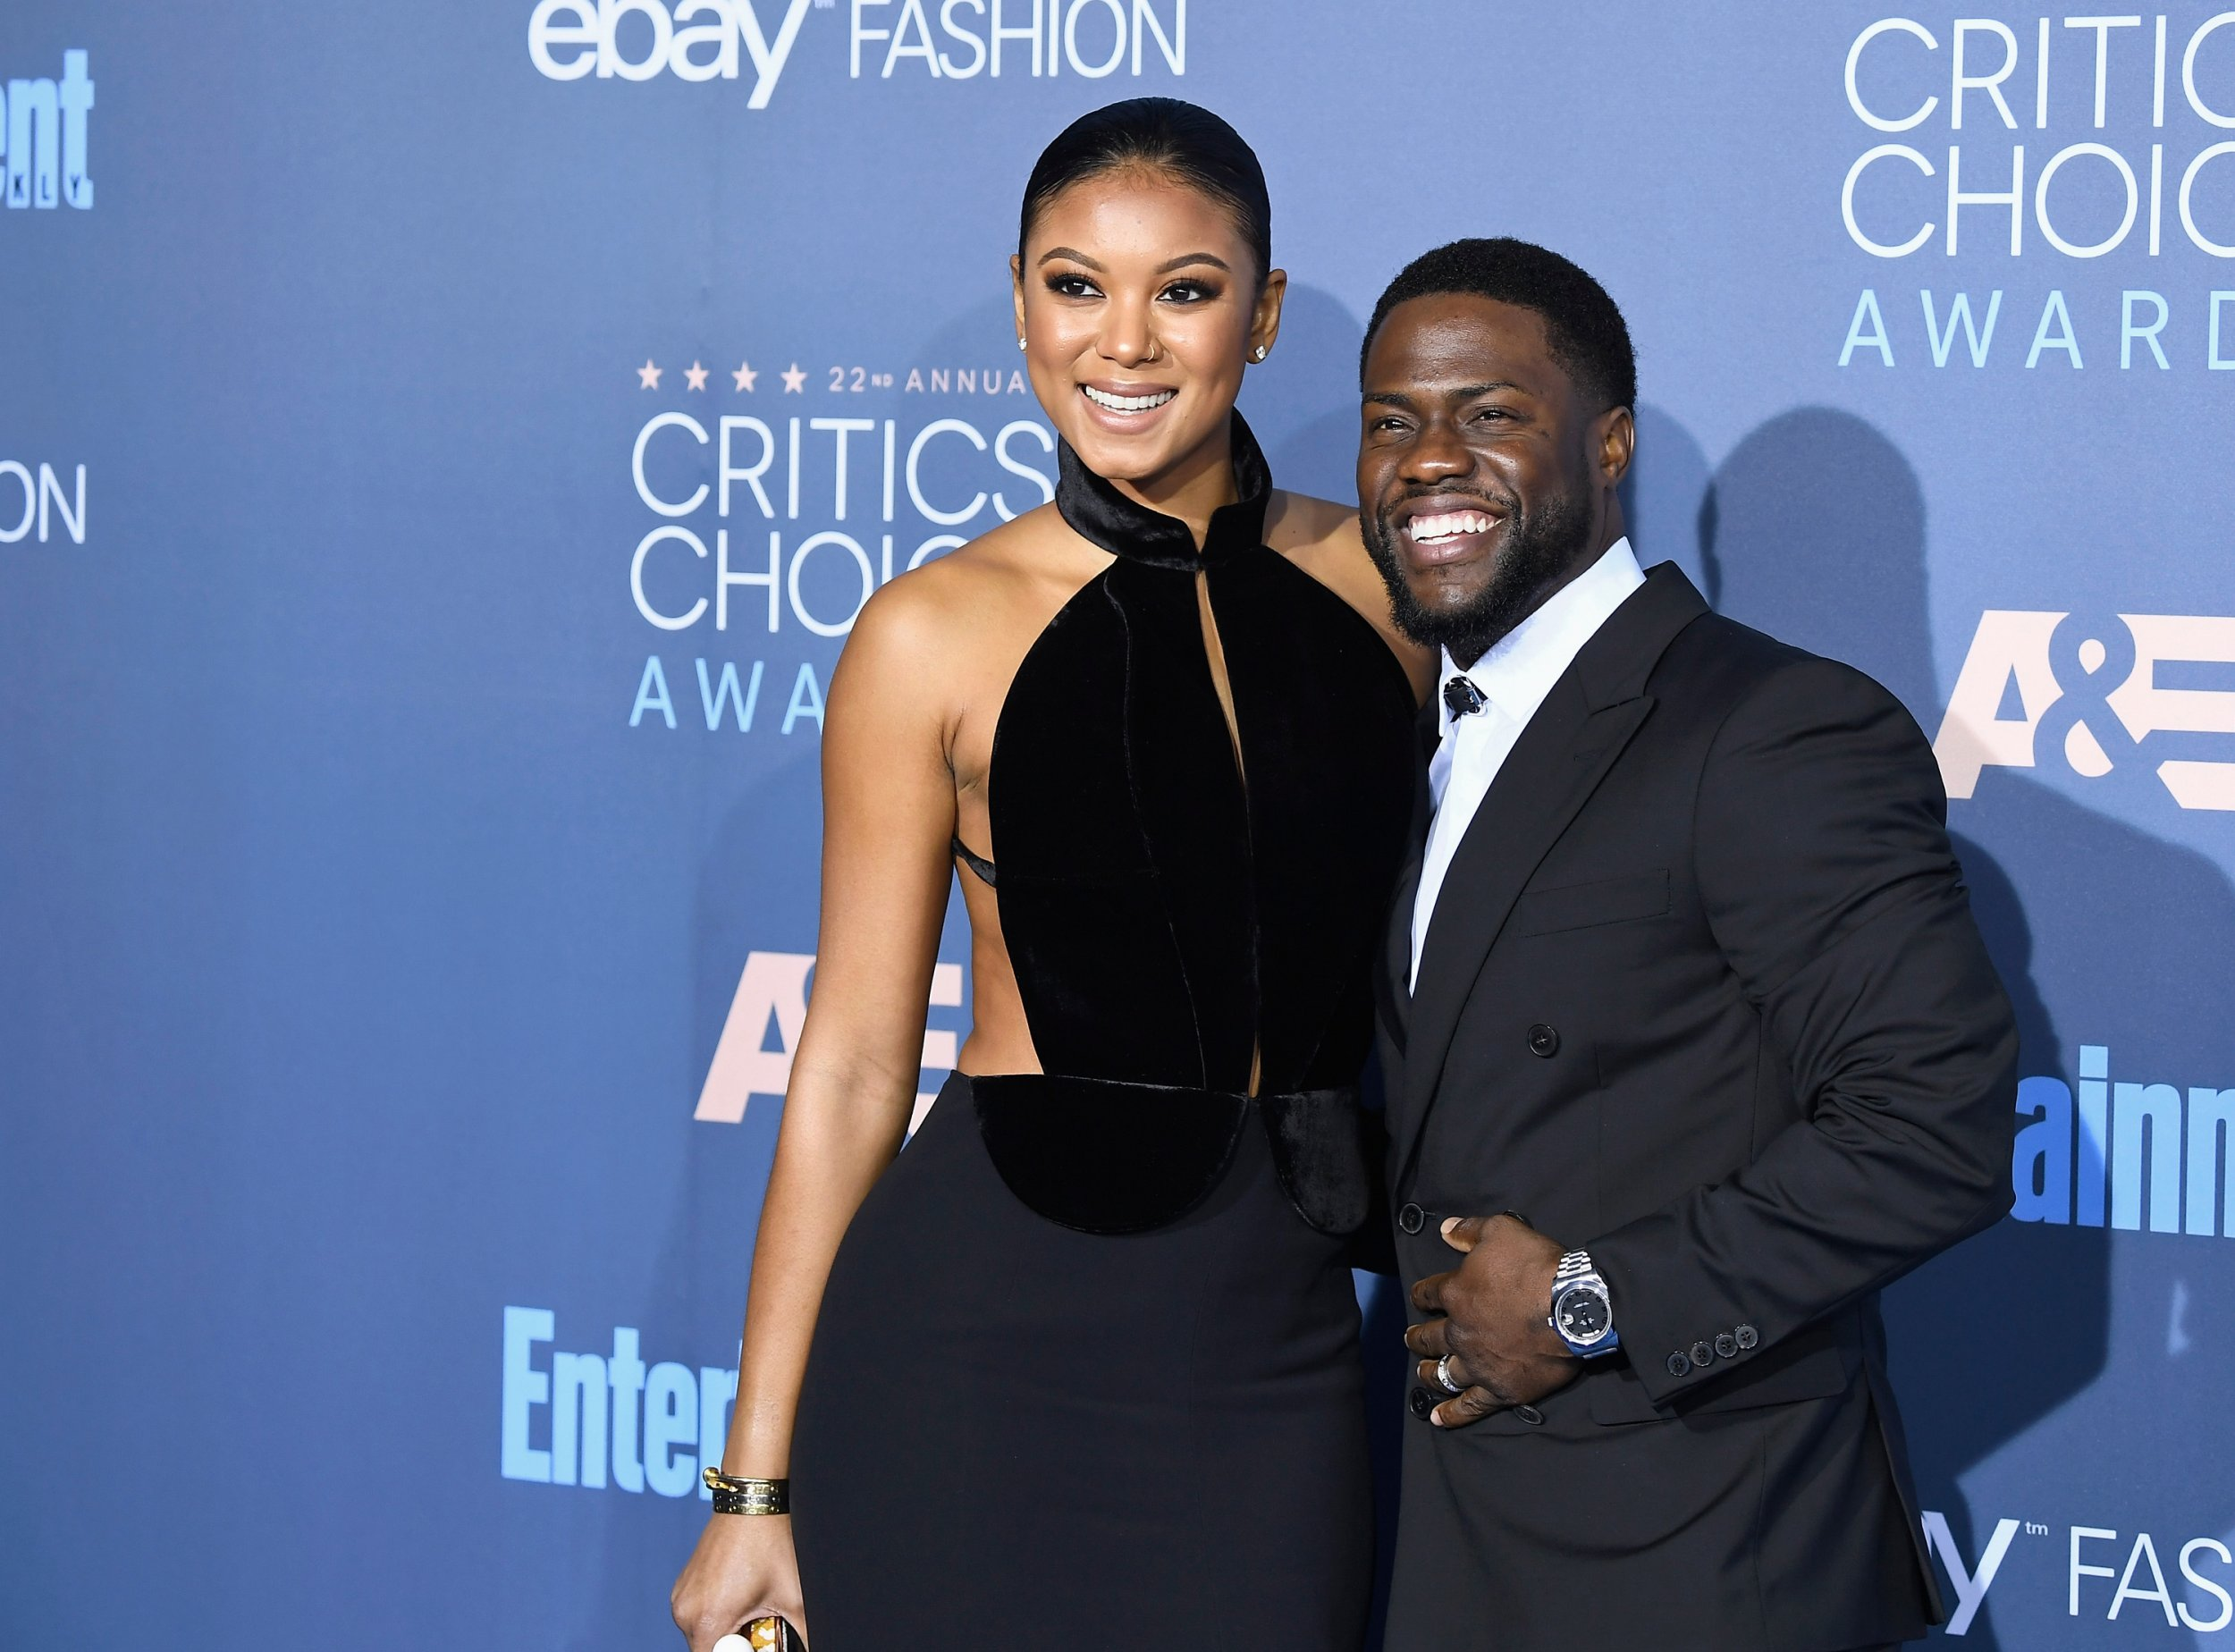 09_19_Kevin hart and wife_01